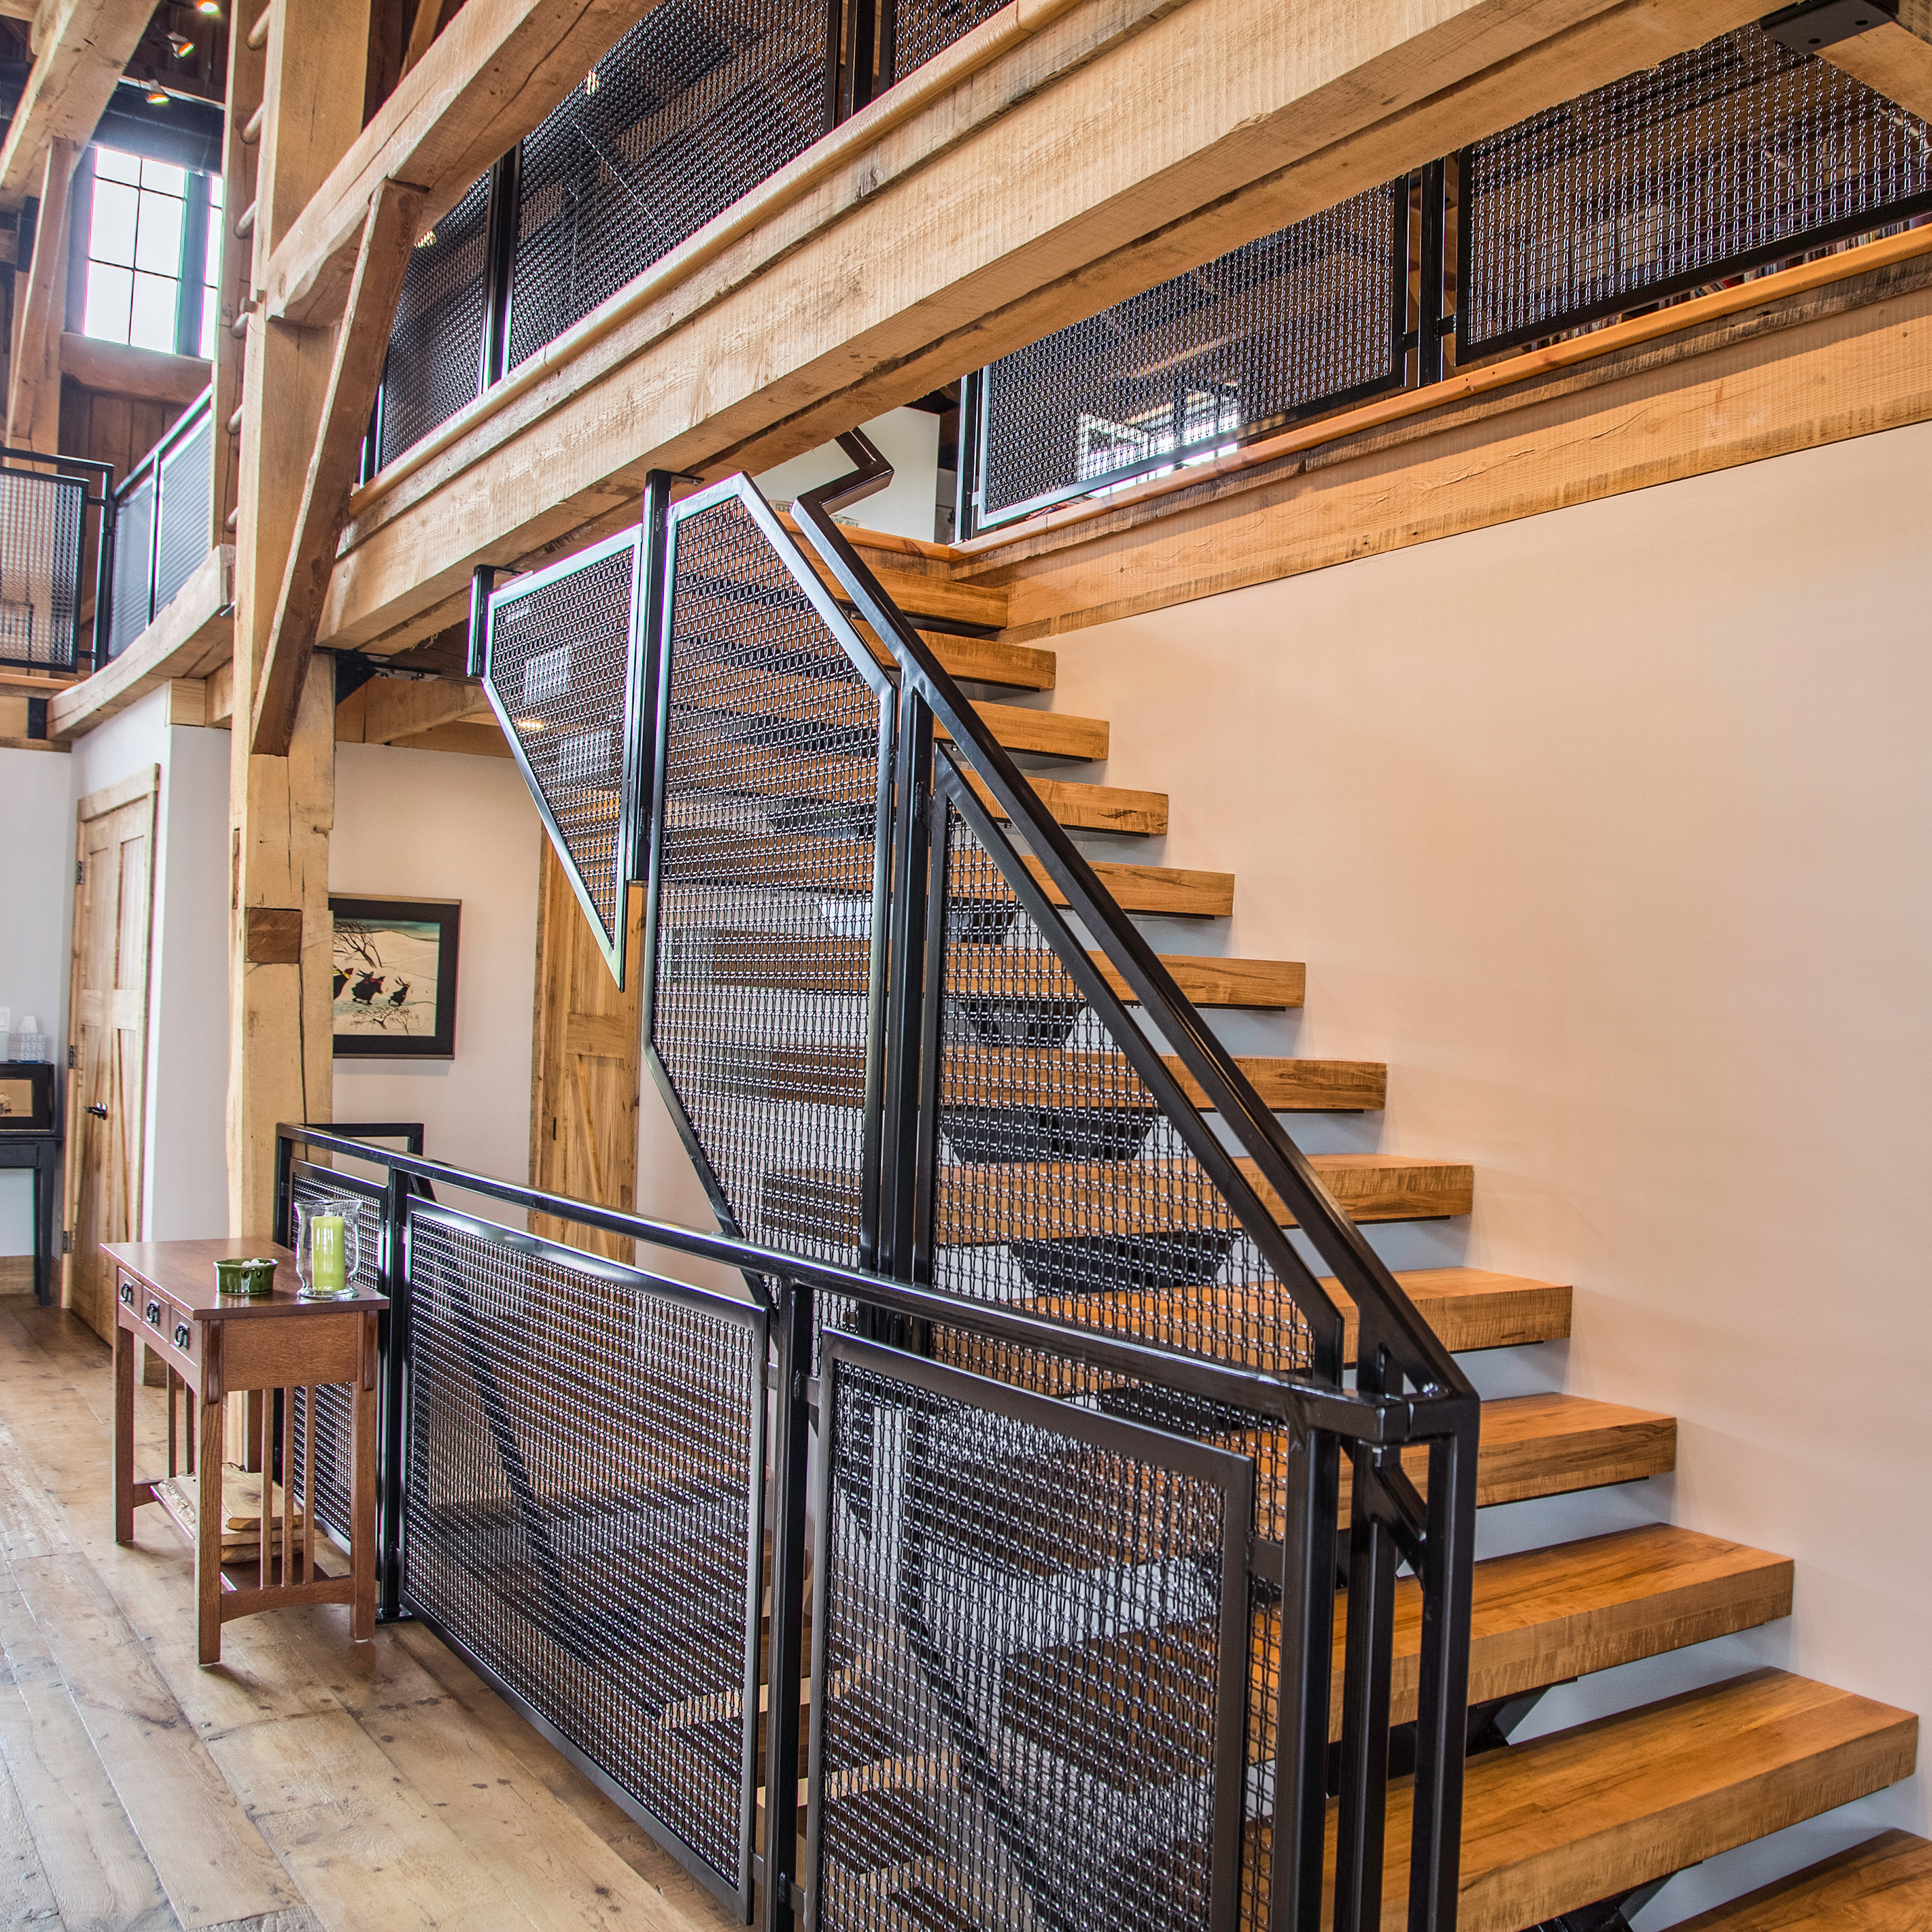 Wire mesh staircase